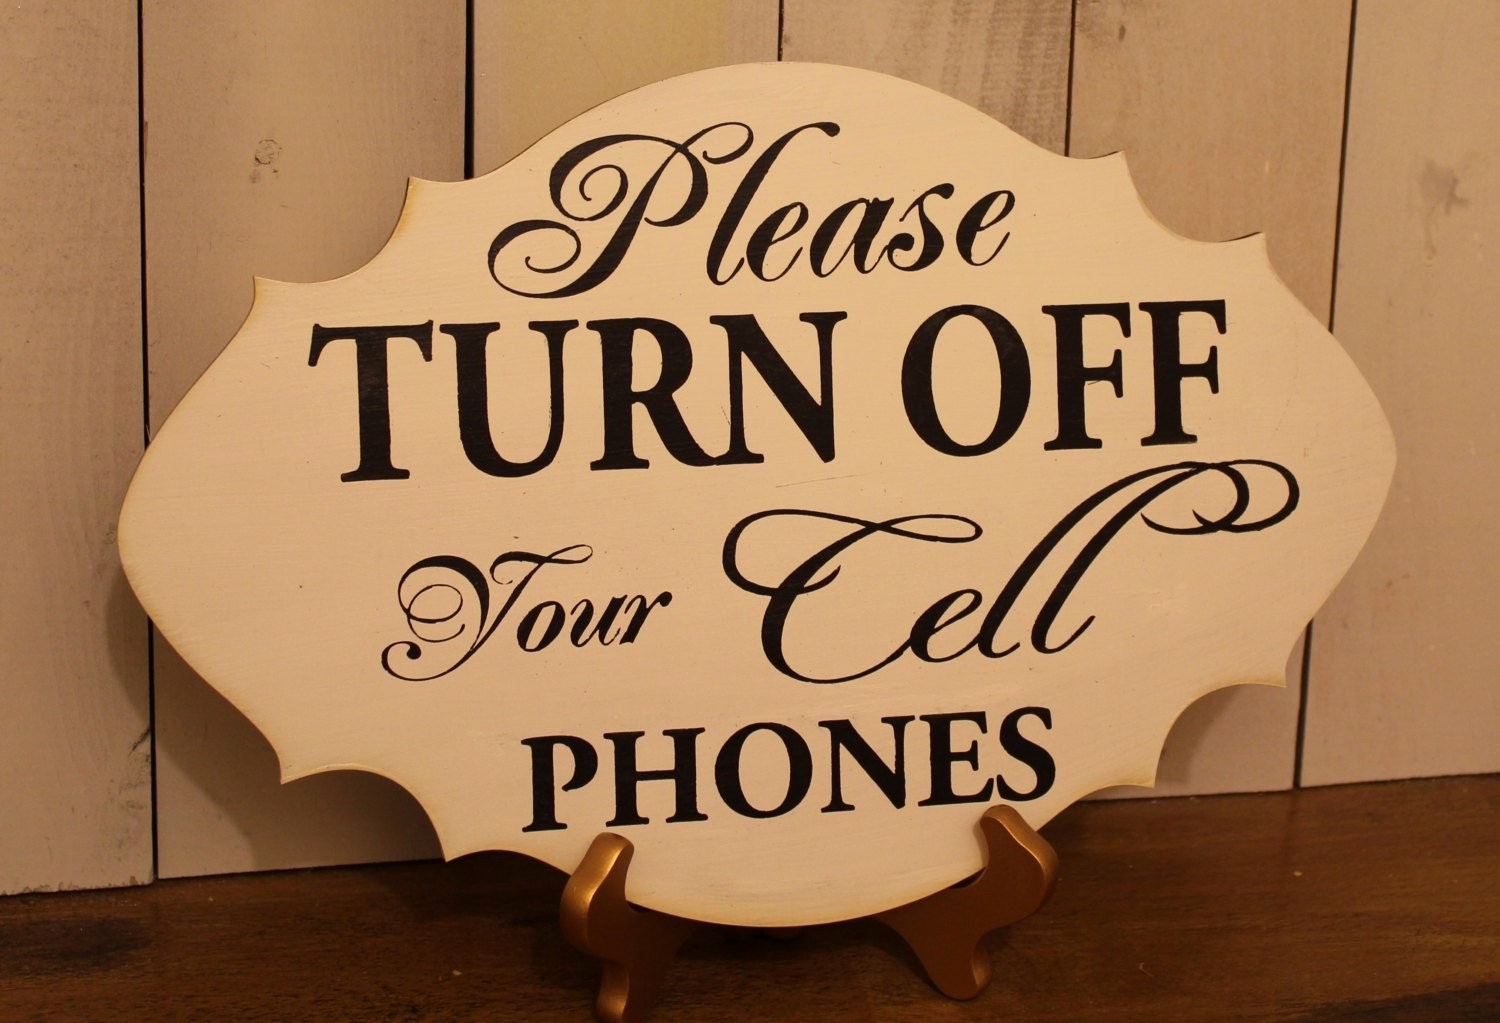 Turn Off Cell Phone Sign Luxury Please Turn Off Your Cell Phones Ceremony Sign event Sign Cell